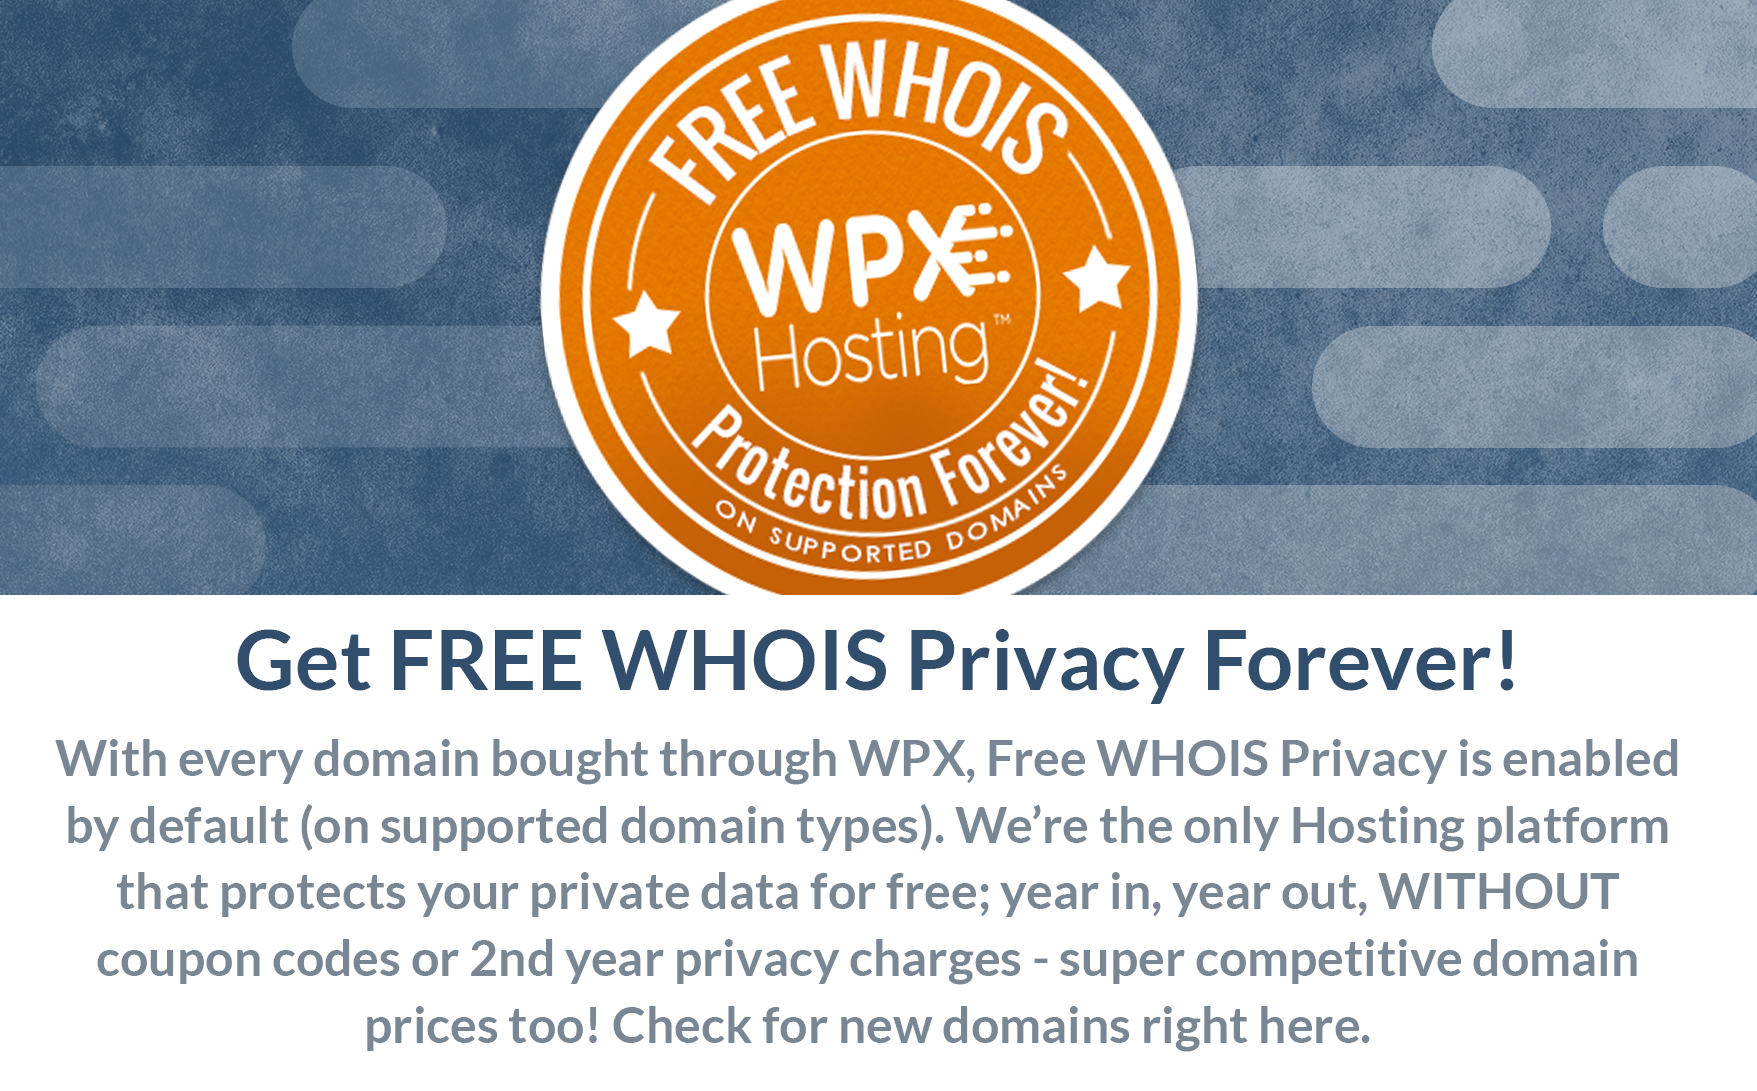 Free WHOIS Privacy forever with WPX Hosting